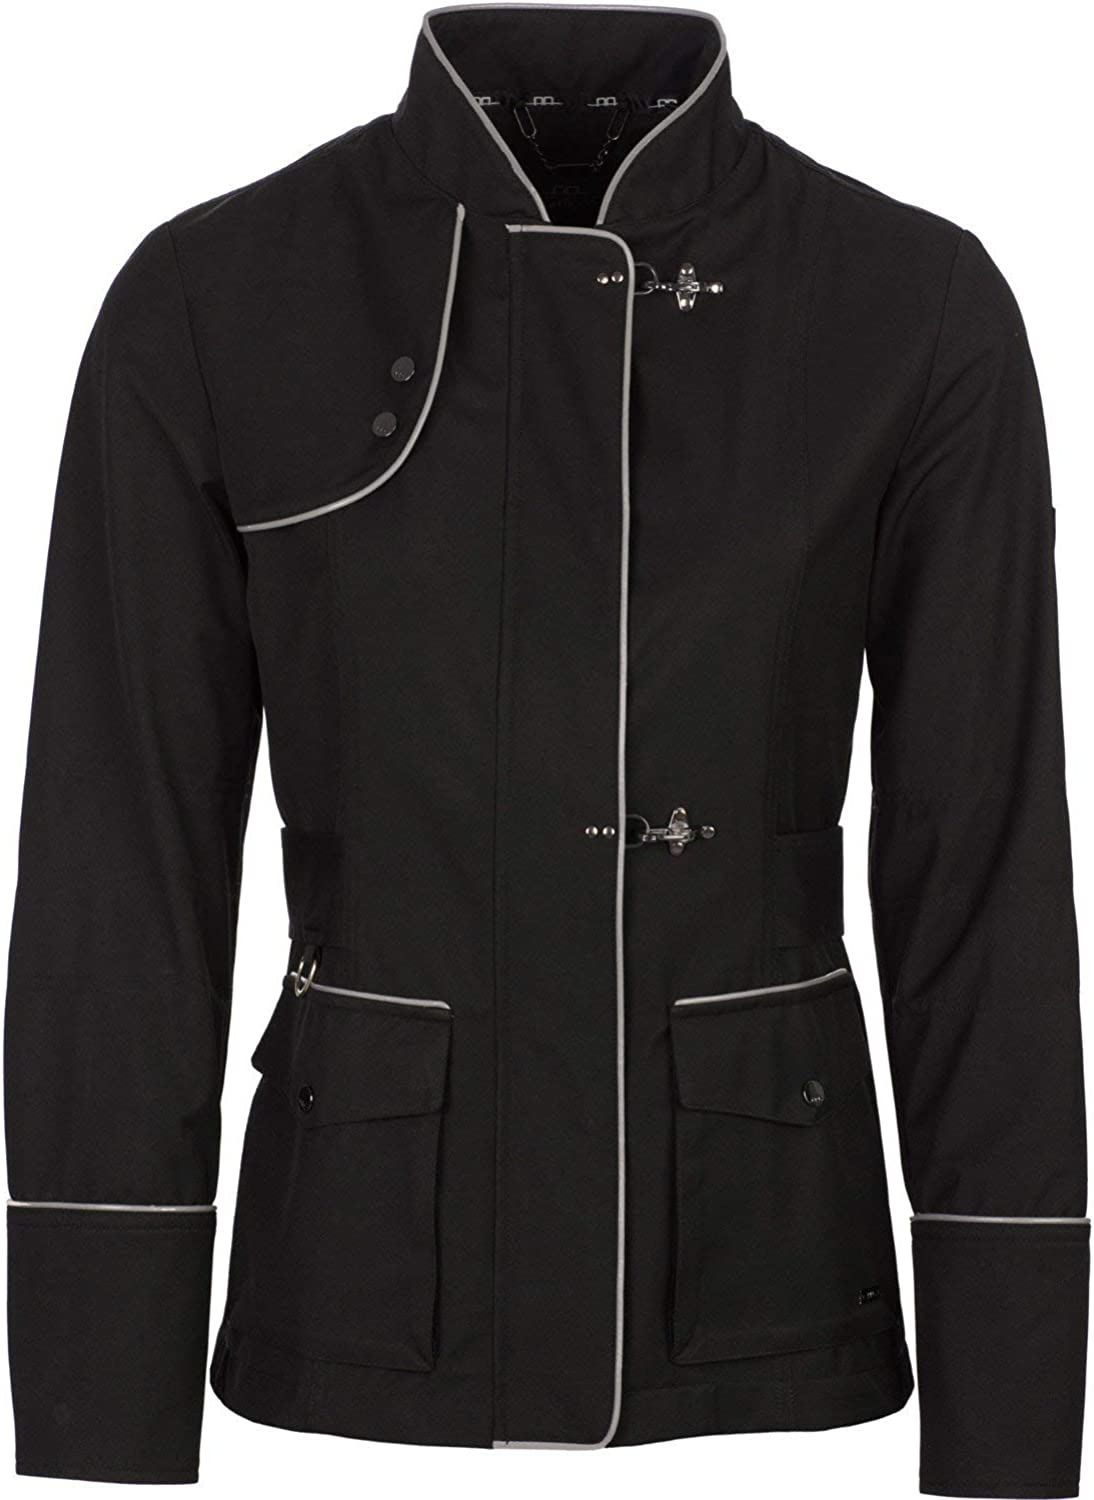 Alessandro Max 42% OFF OFFer Albanese AA Platinum Imperia Small Jacket X Womens Bl